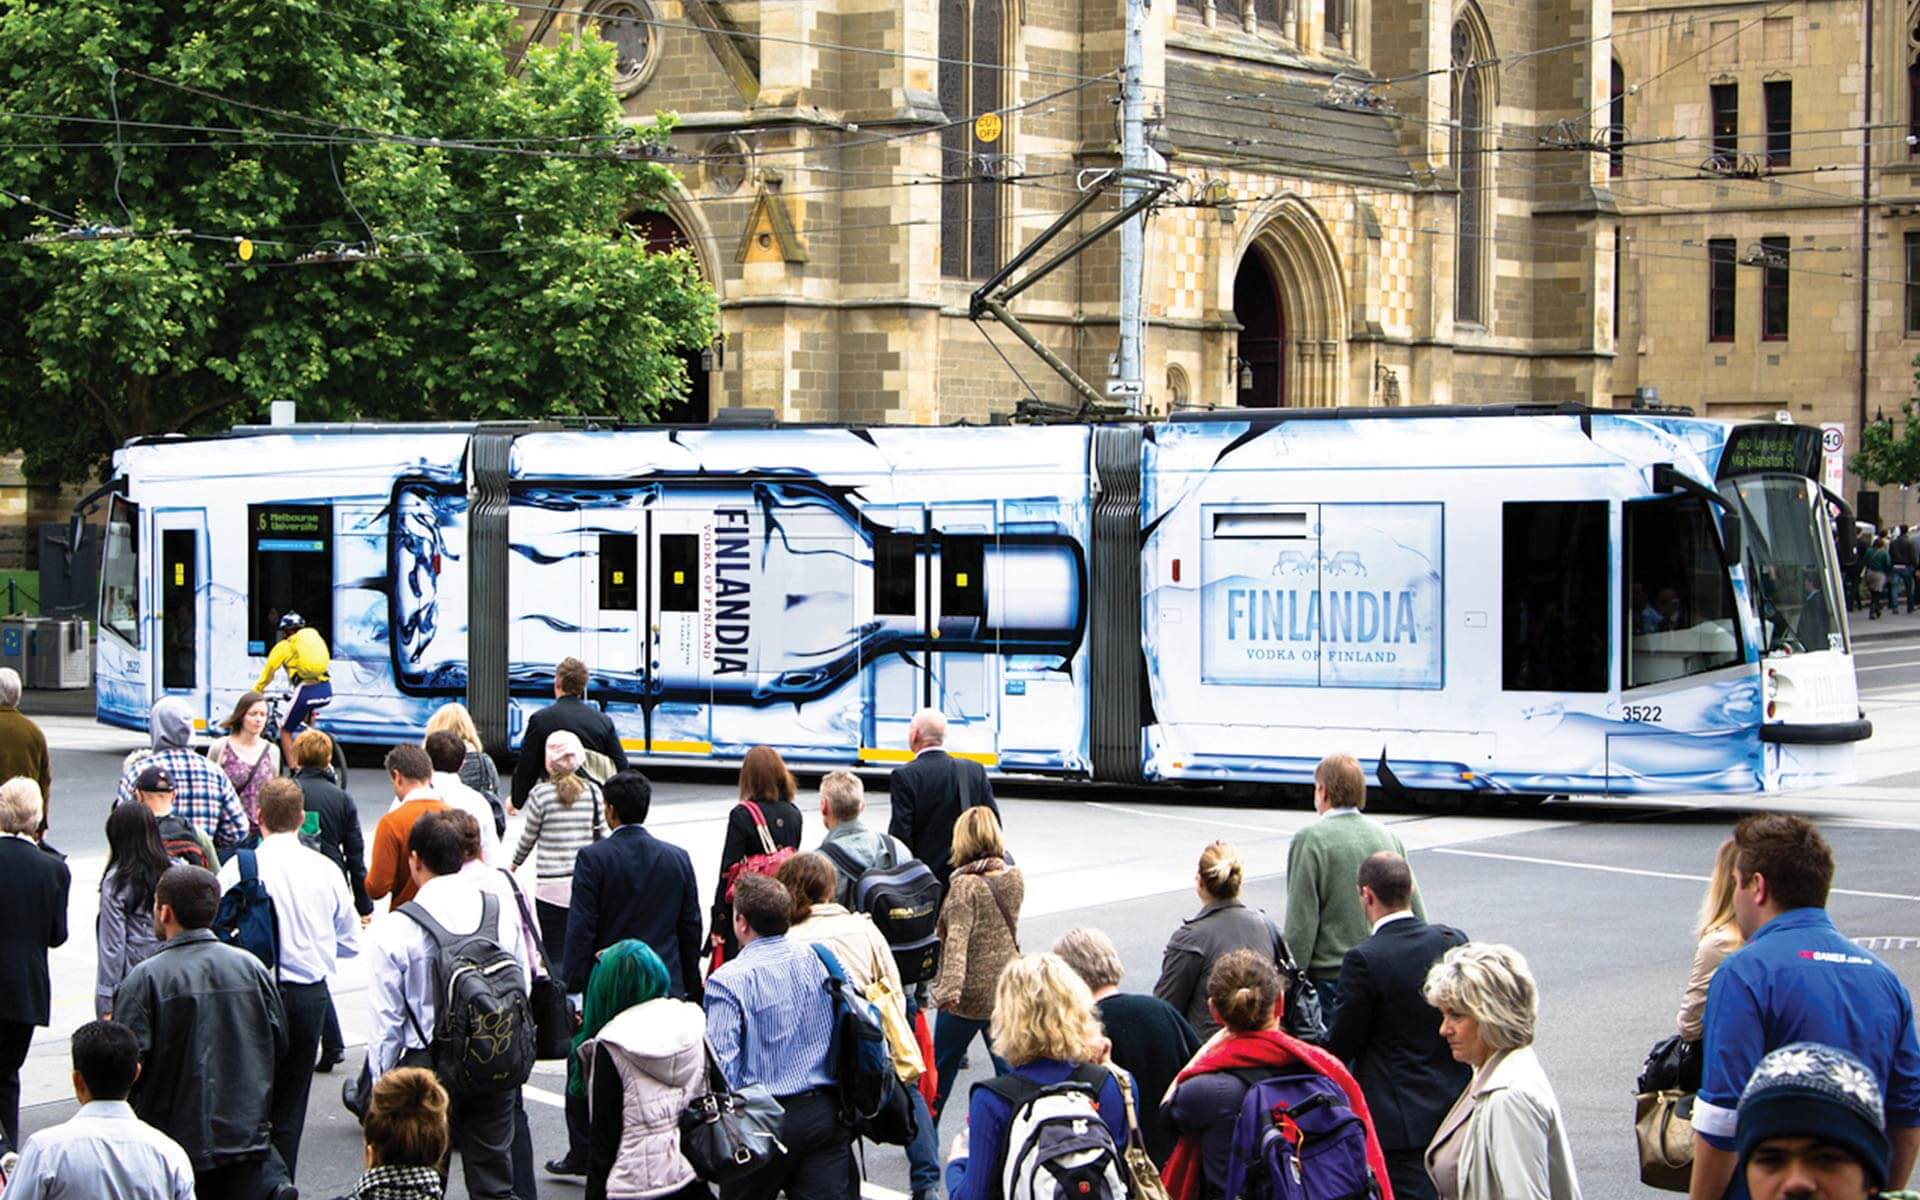 Finlandia branded tram, Melbourne side view